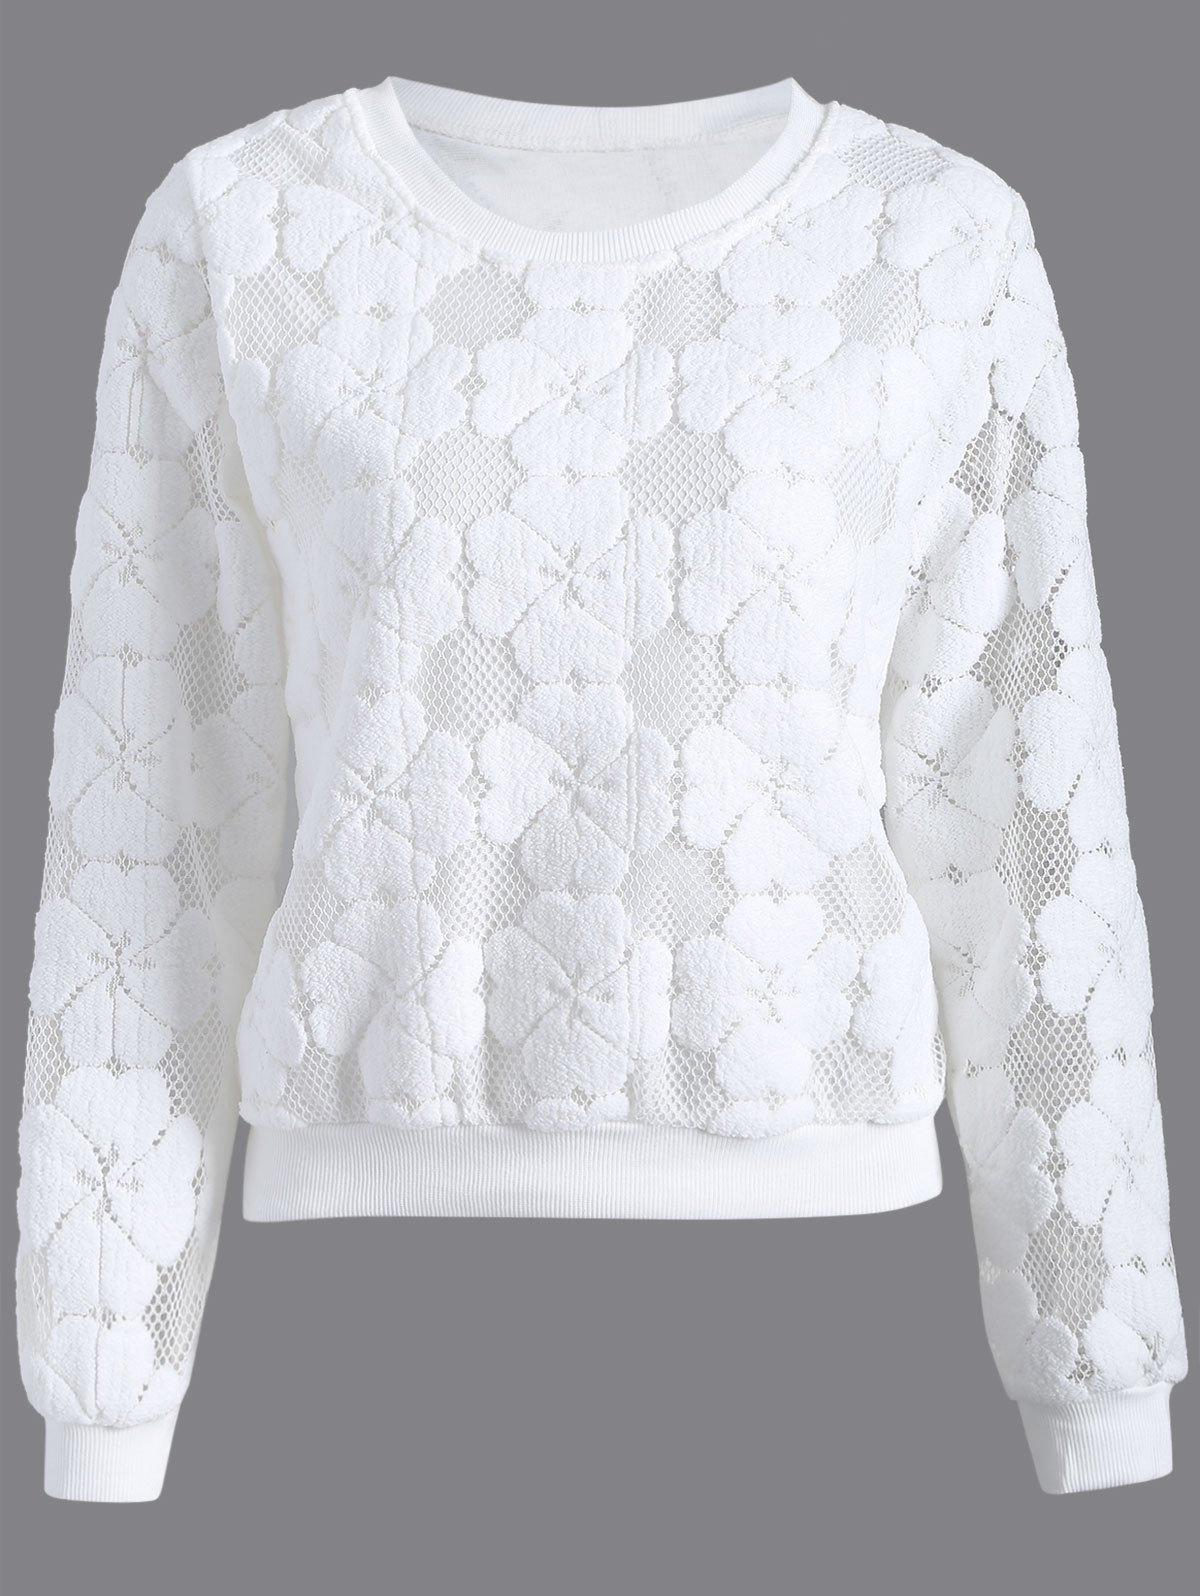 Flocked Mesh Pullover Sweatshirt - WHITE L